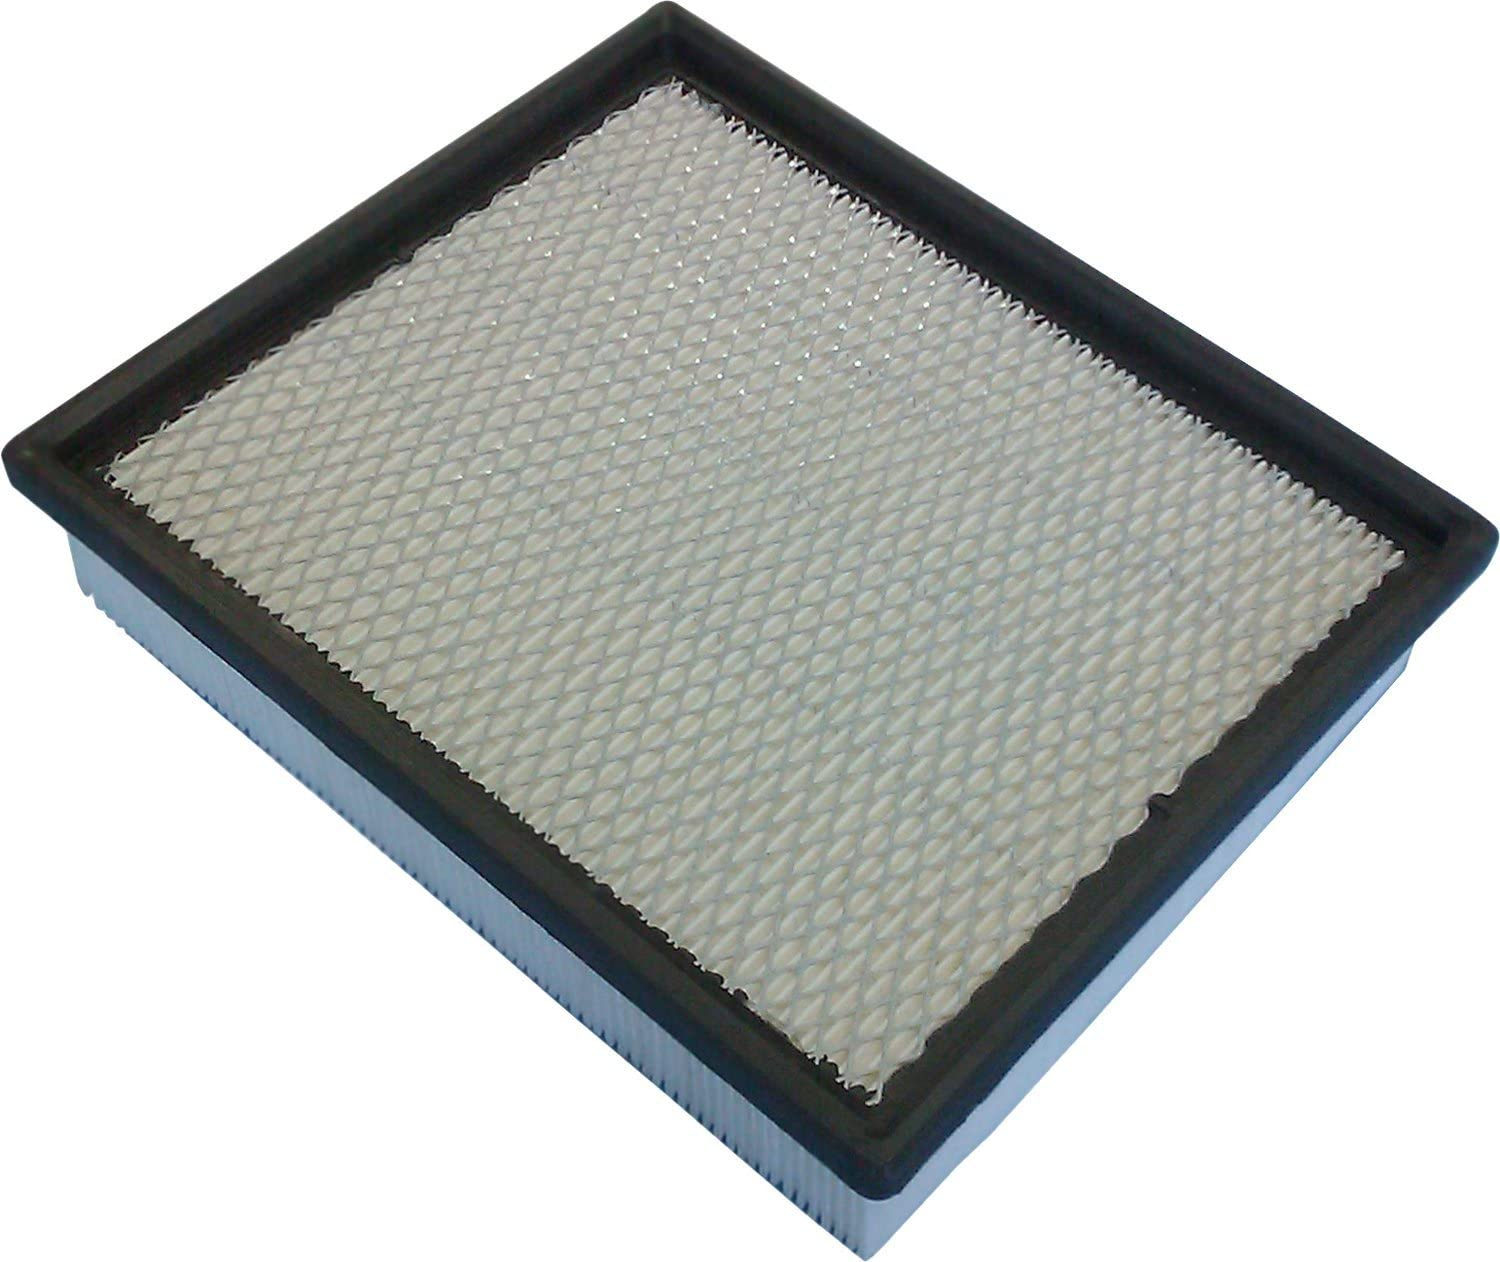 F00E164677 Workshop Engine Air Filter Bosch 5544WS